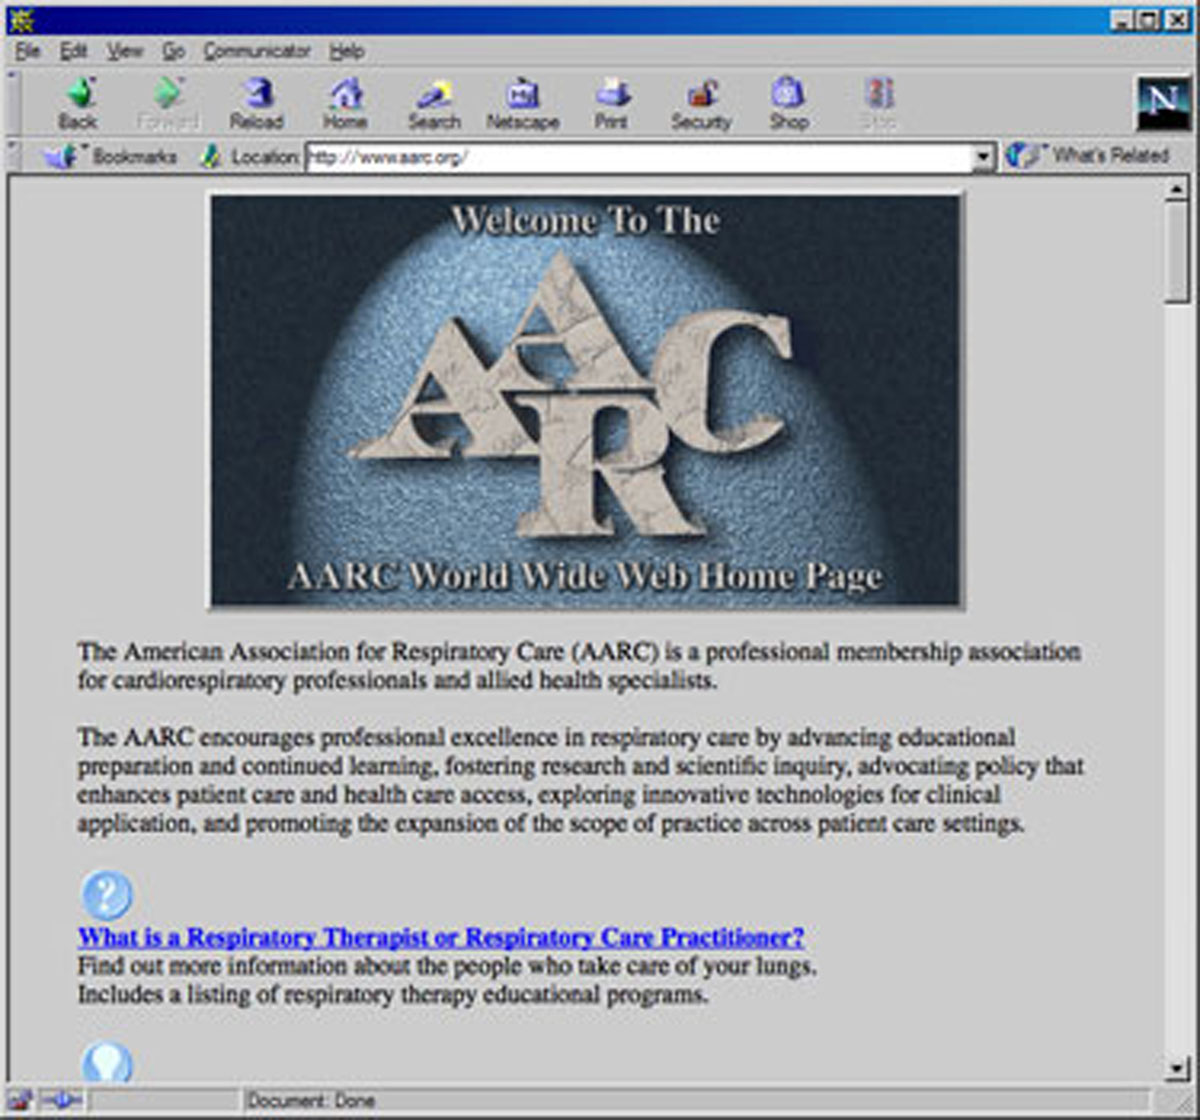 1996 Website Launched